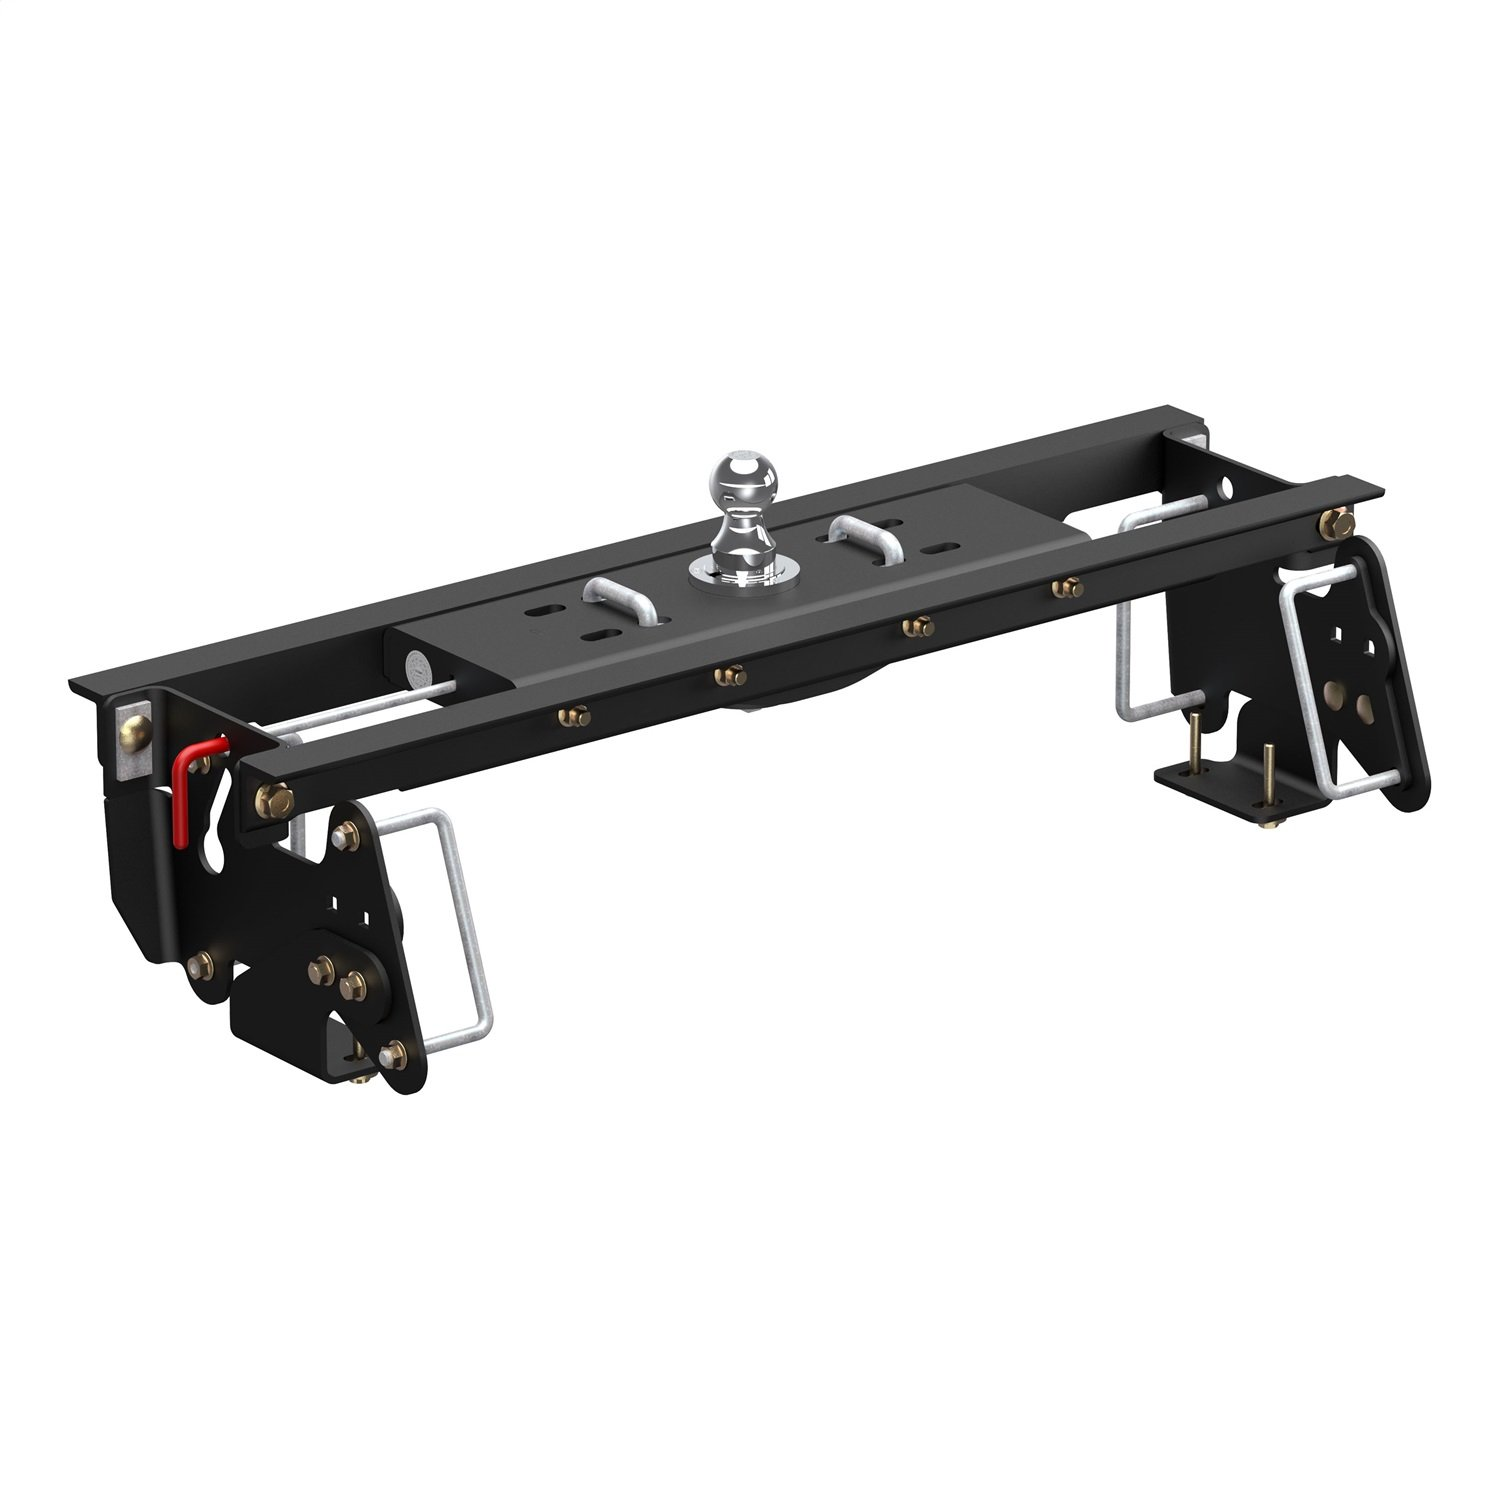 CURT 60682 Double Lock EZr Gooseneck Hitch with Flip-and-Store Black 30,000 lbs, 2-5/16-Inch Ball, Fits Select Ram, Dodge Ram 2500, 3500 Kit